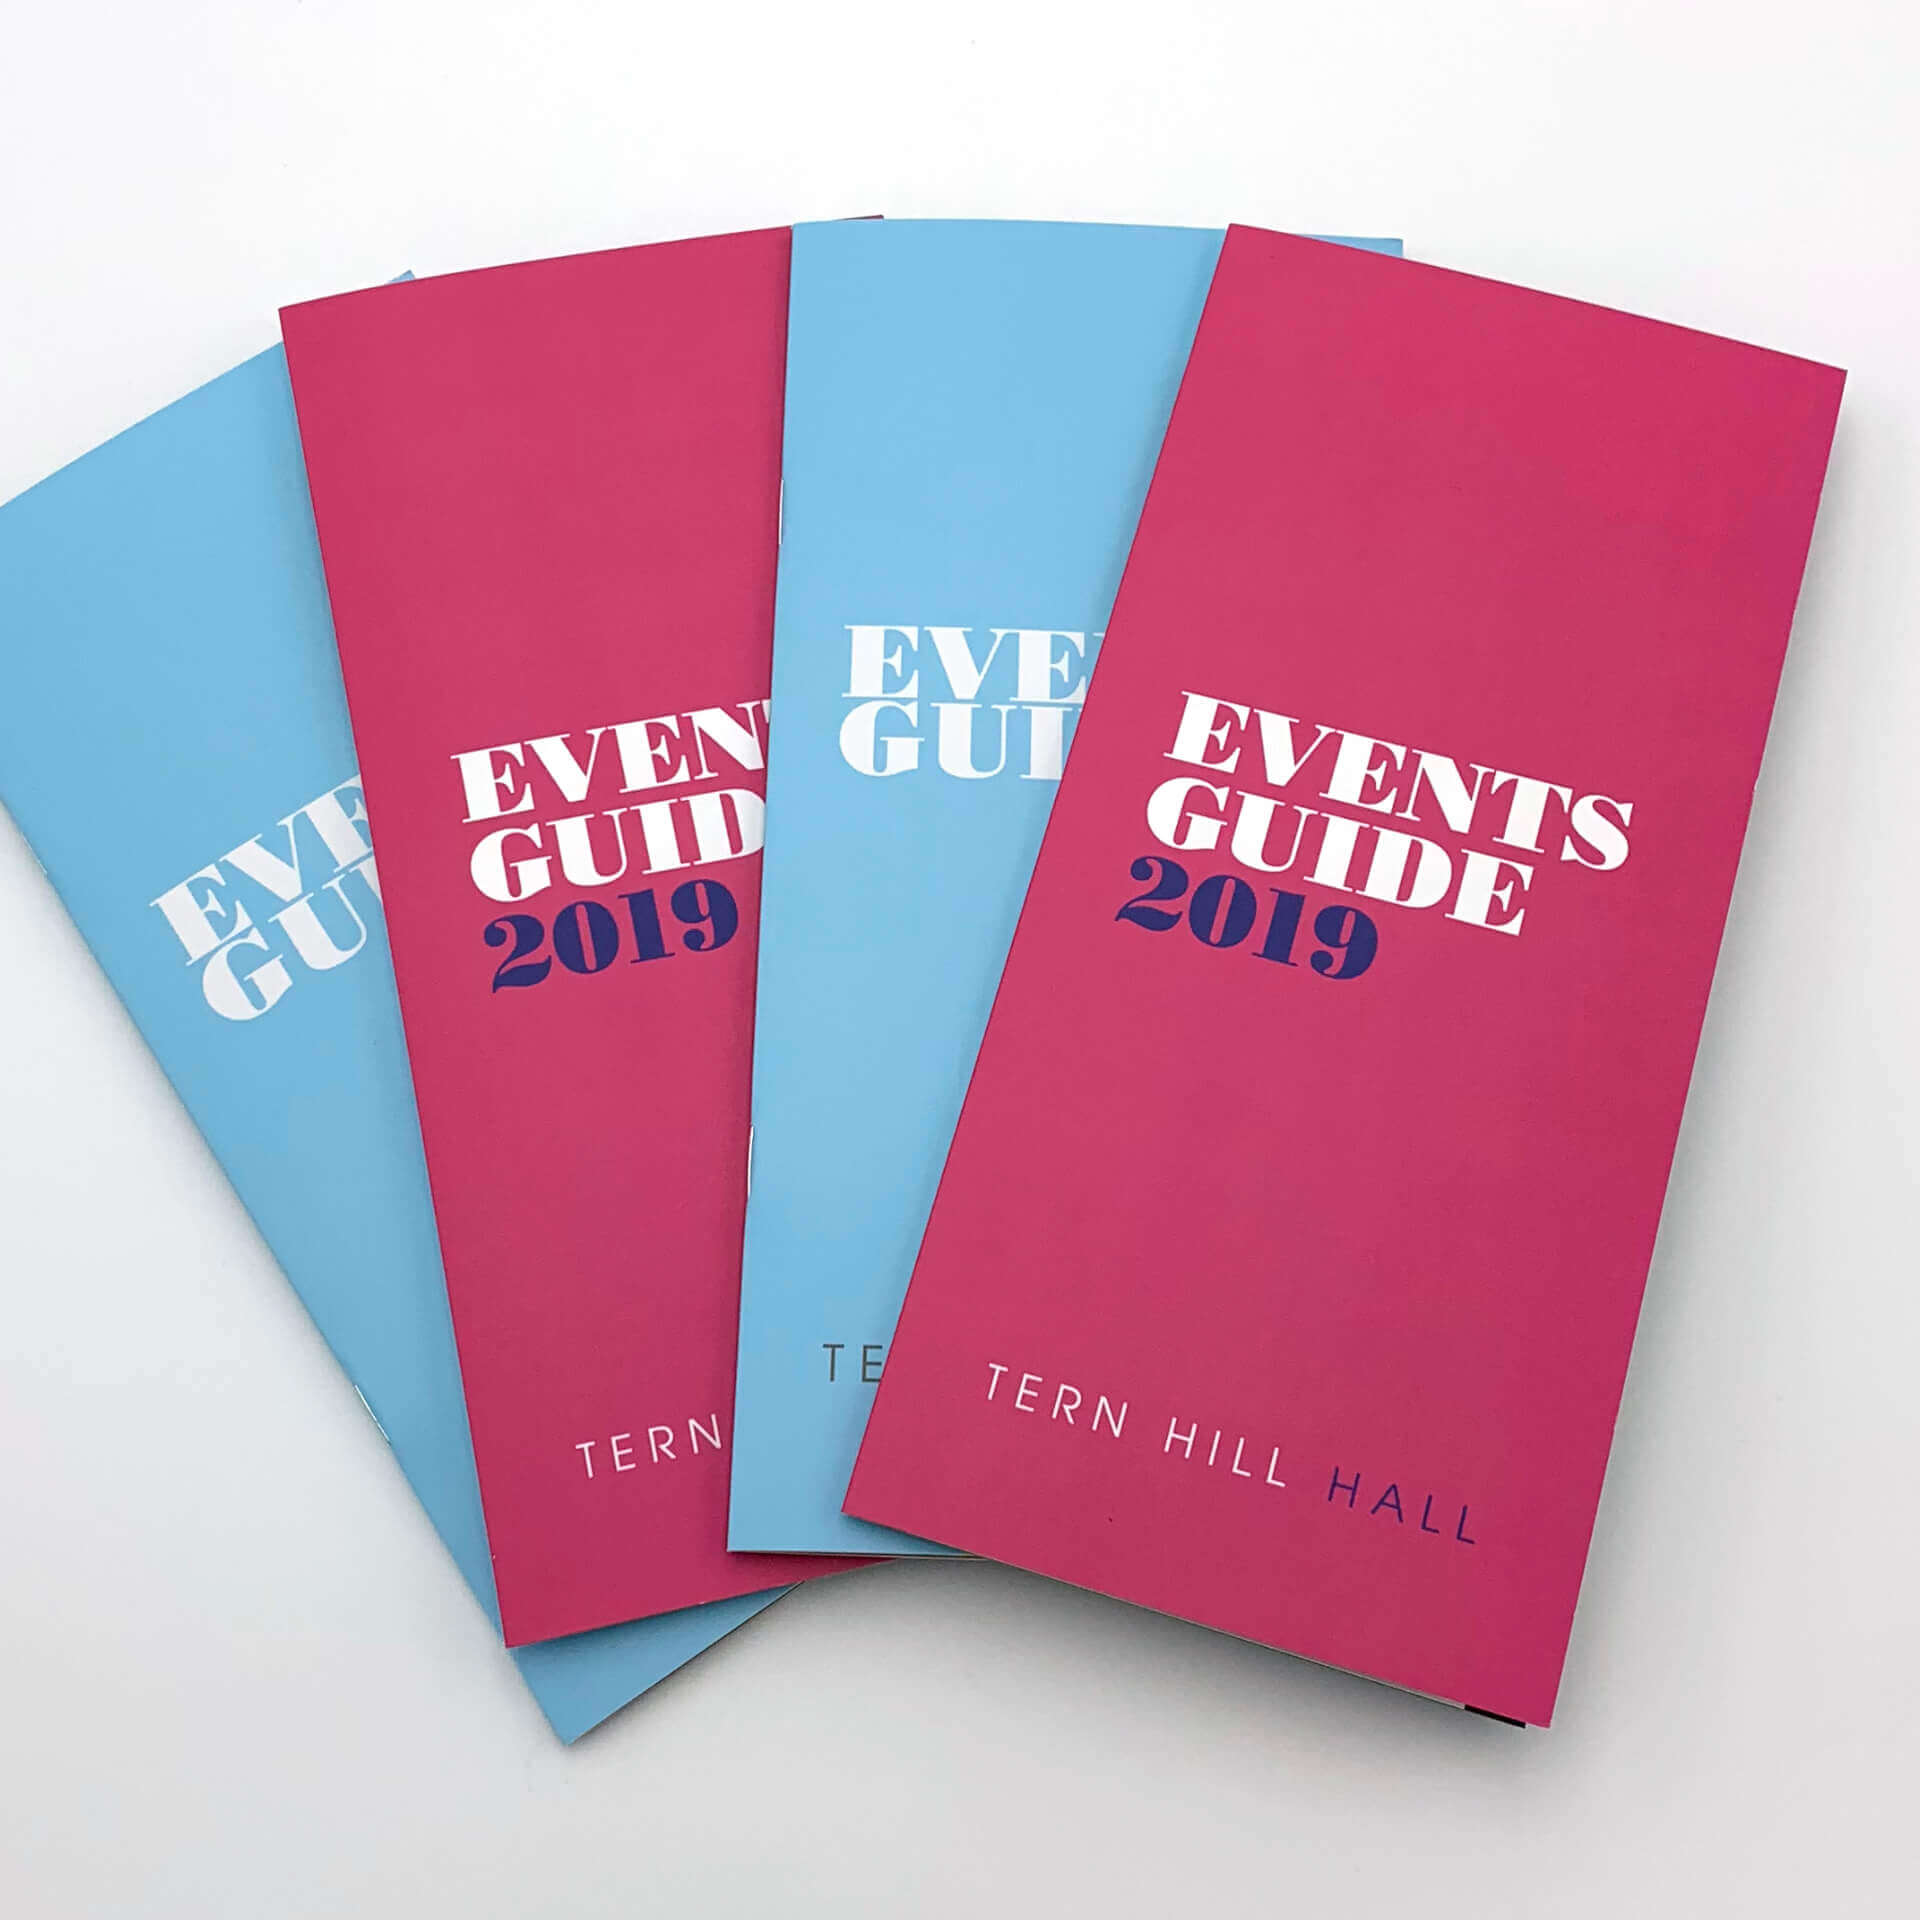 Tern Hill Hall Events Guides and Event Brochures